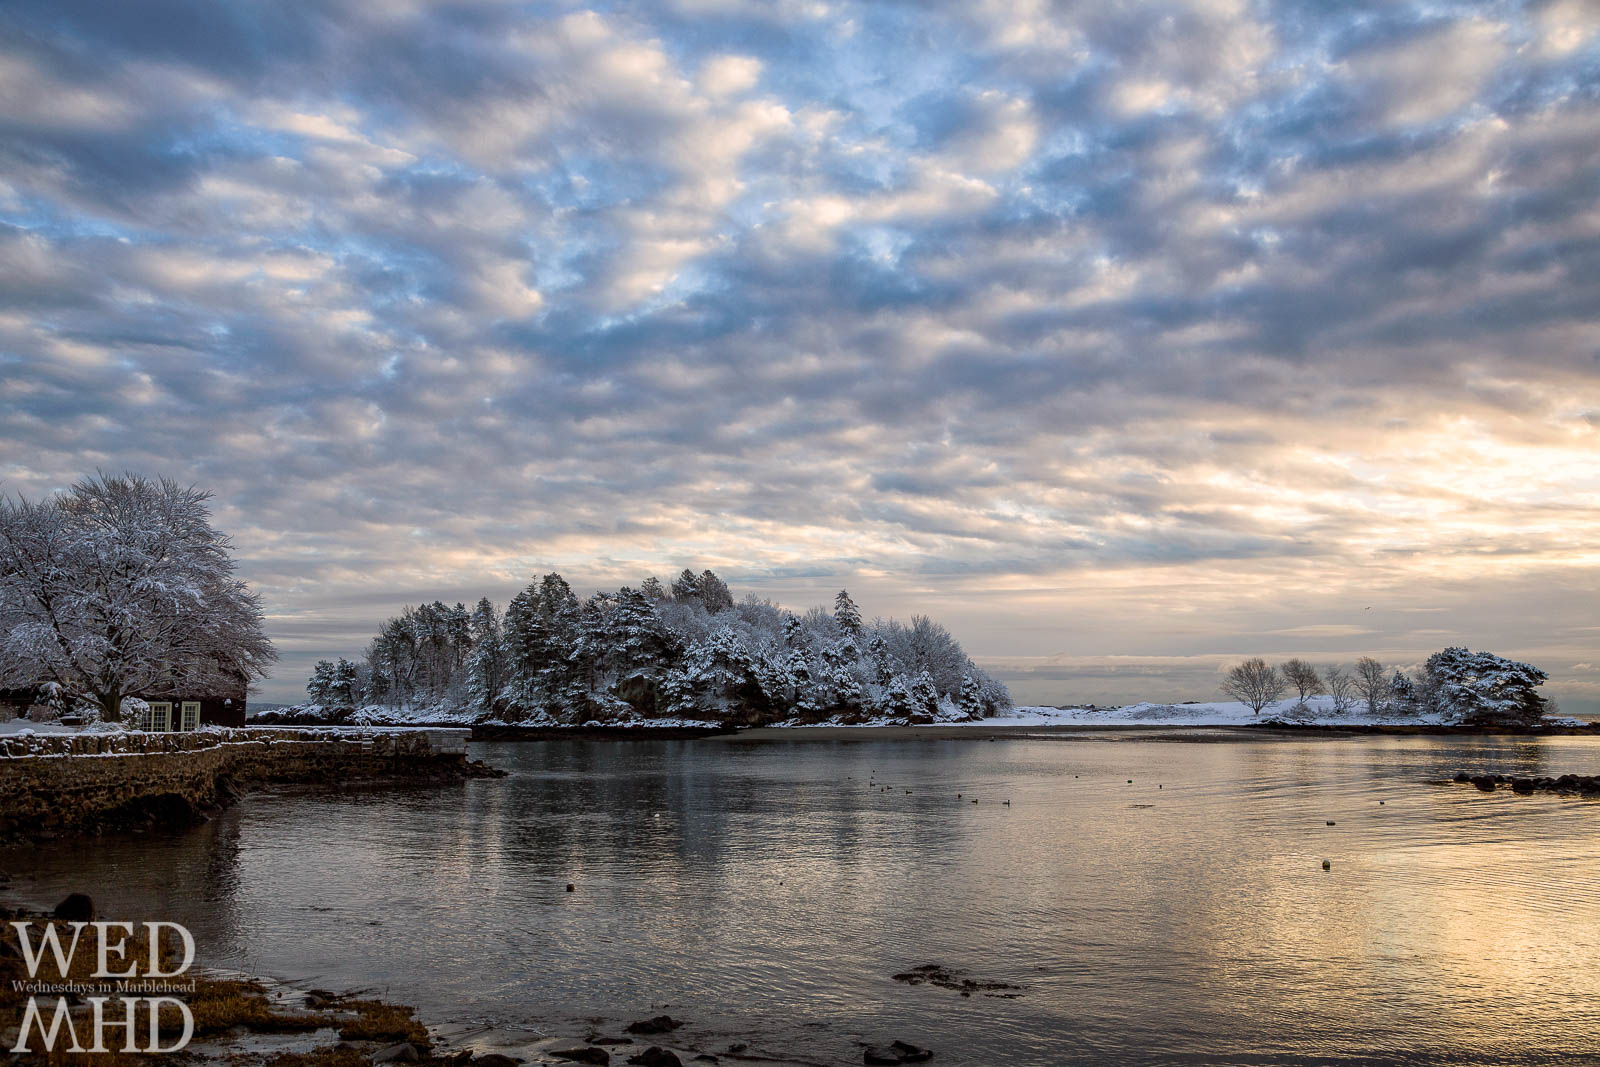 A dusting of snow on Brown's Island shines in the morning light reflected in the waters of Fisherman's Beach